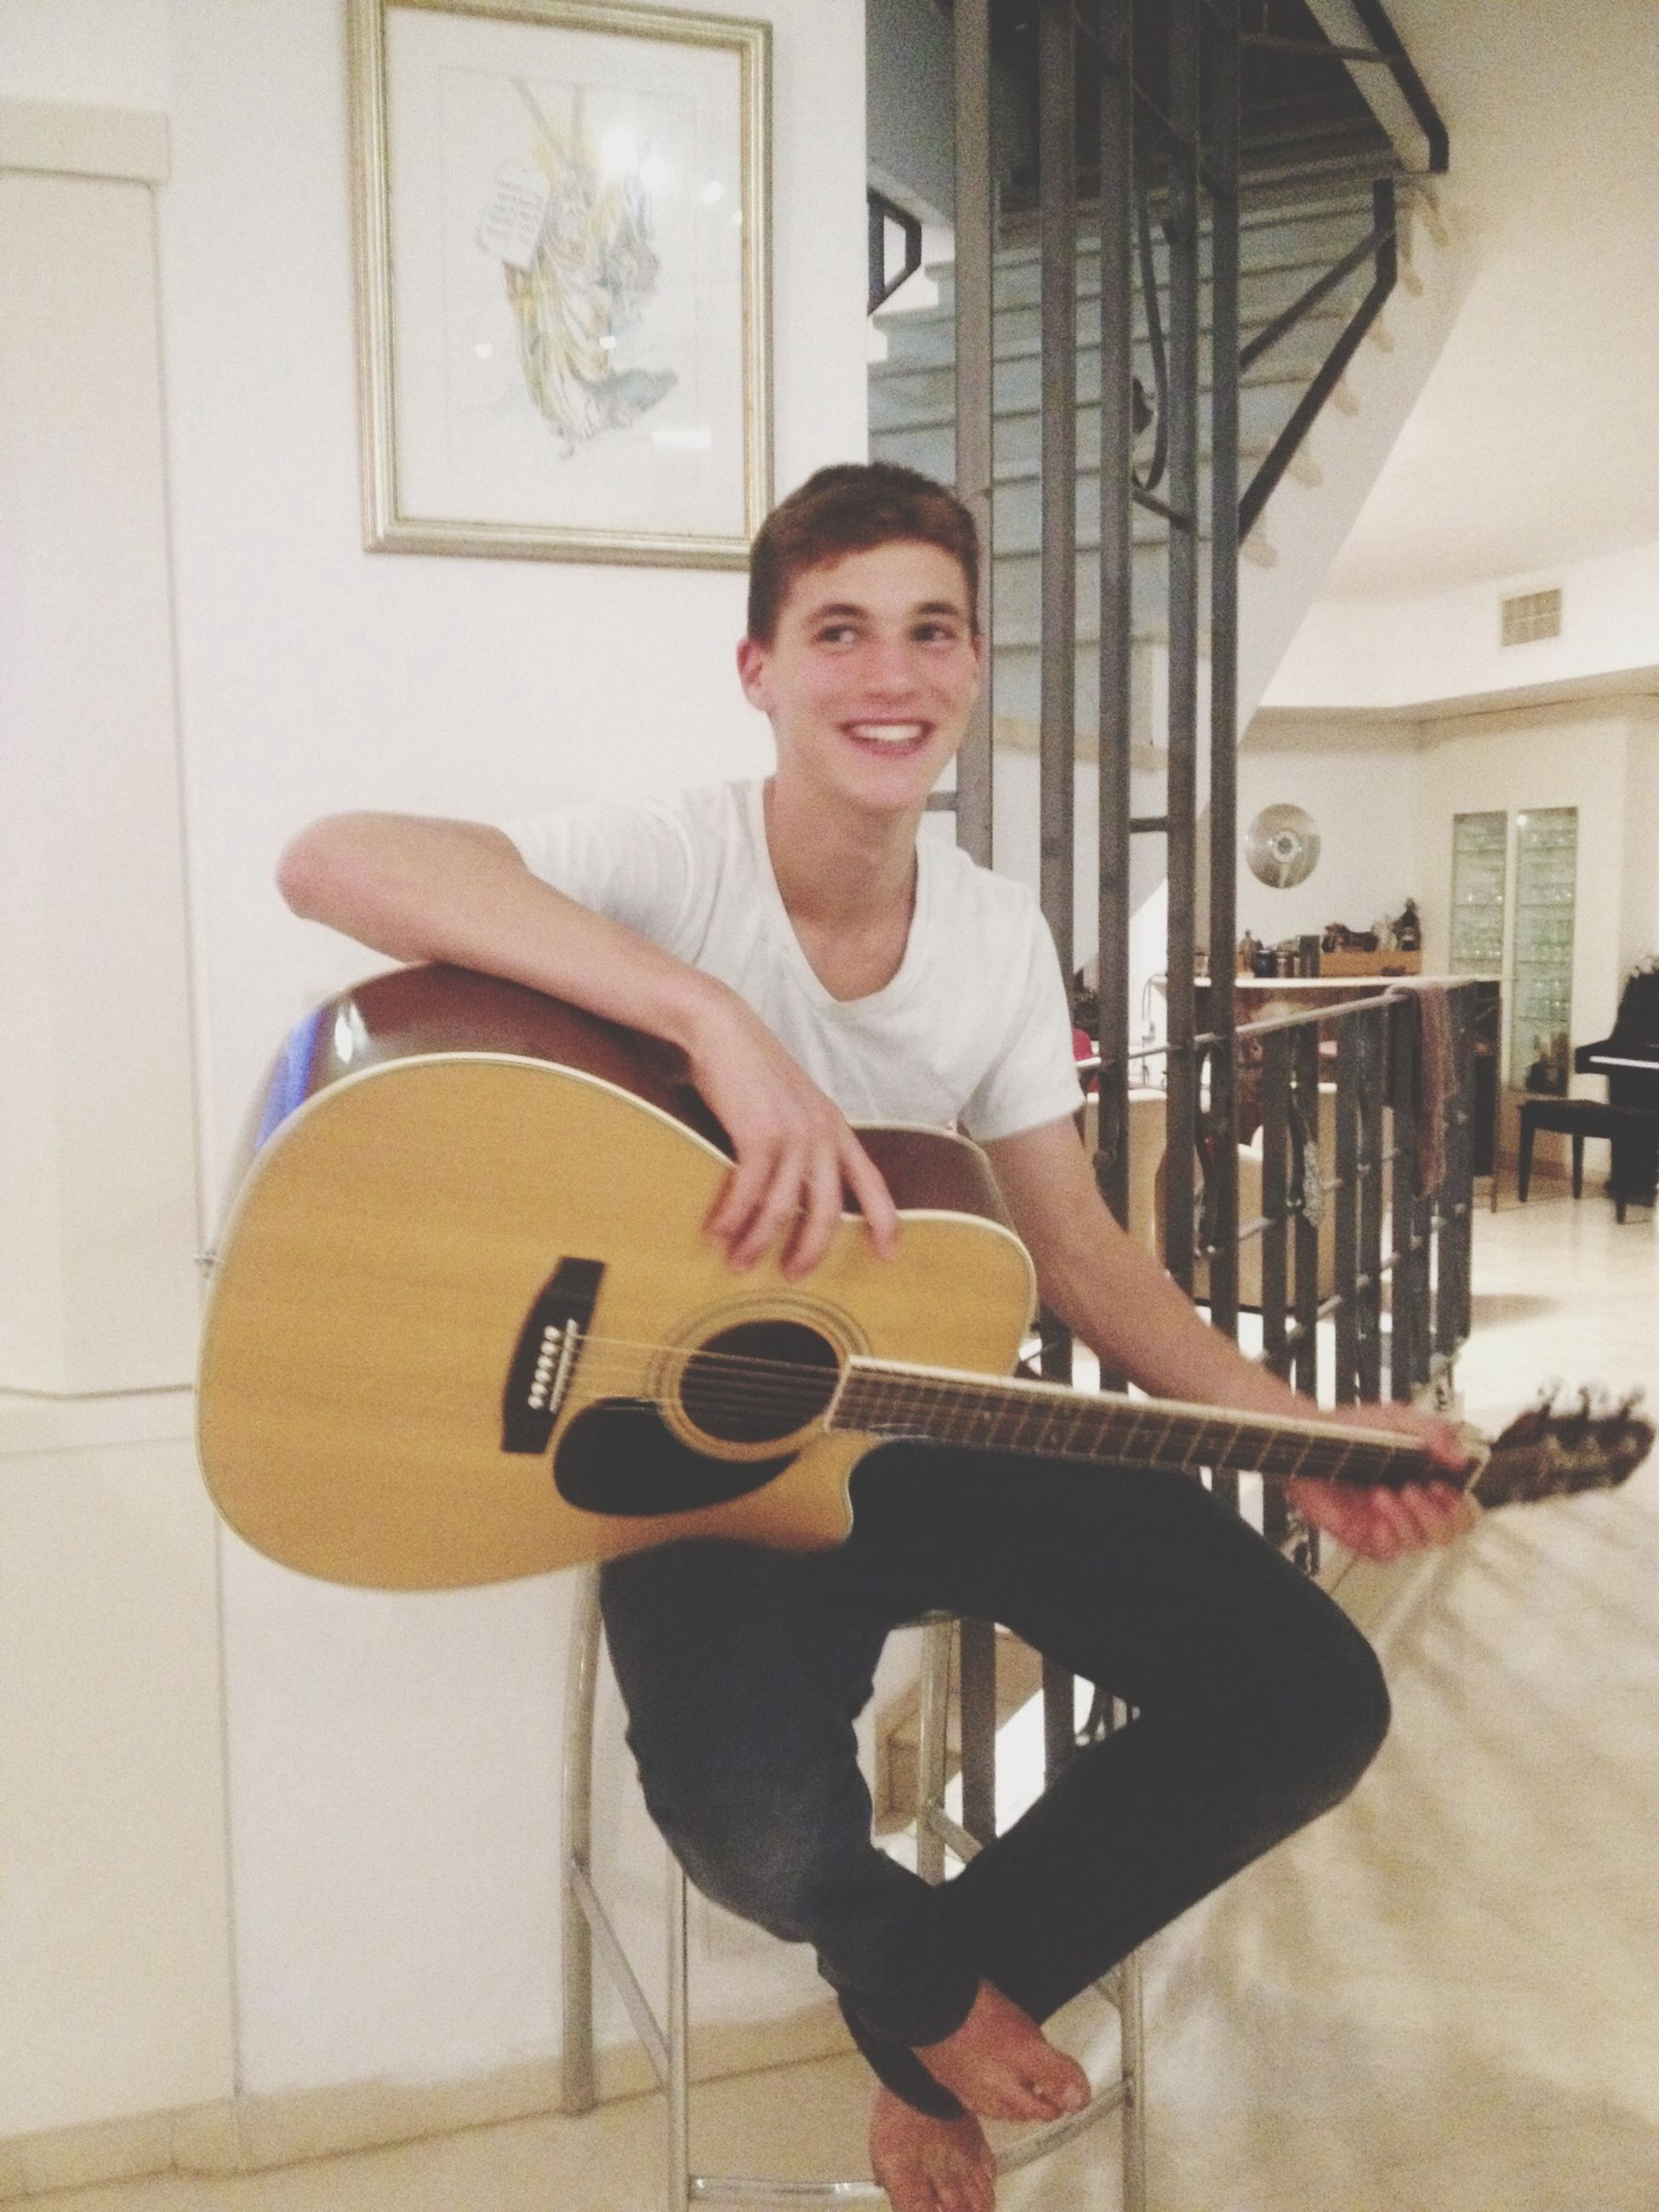 lifestyles, casual clothing, person, leisure activity, indoors, holding, front view, young adult, looking at camera, portrait, sitting, full length, young men, smiling, standing, three quarter length, happiness